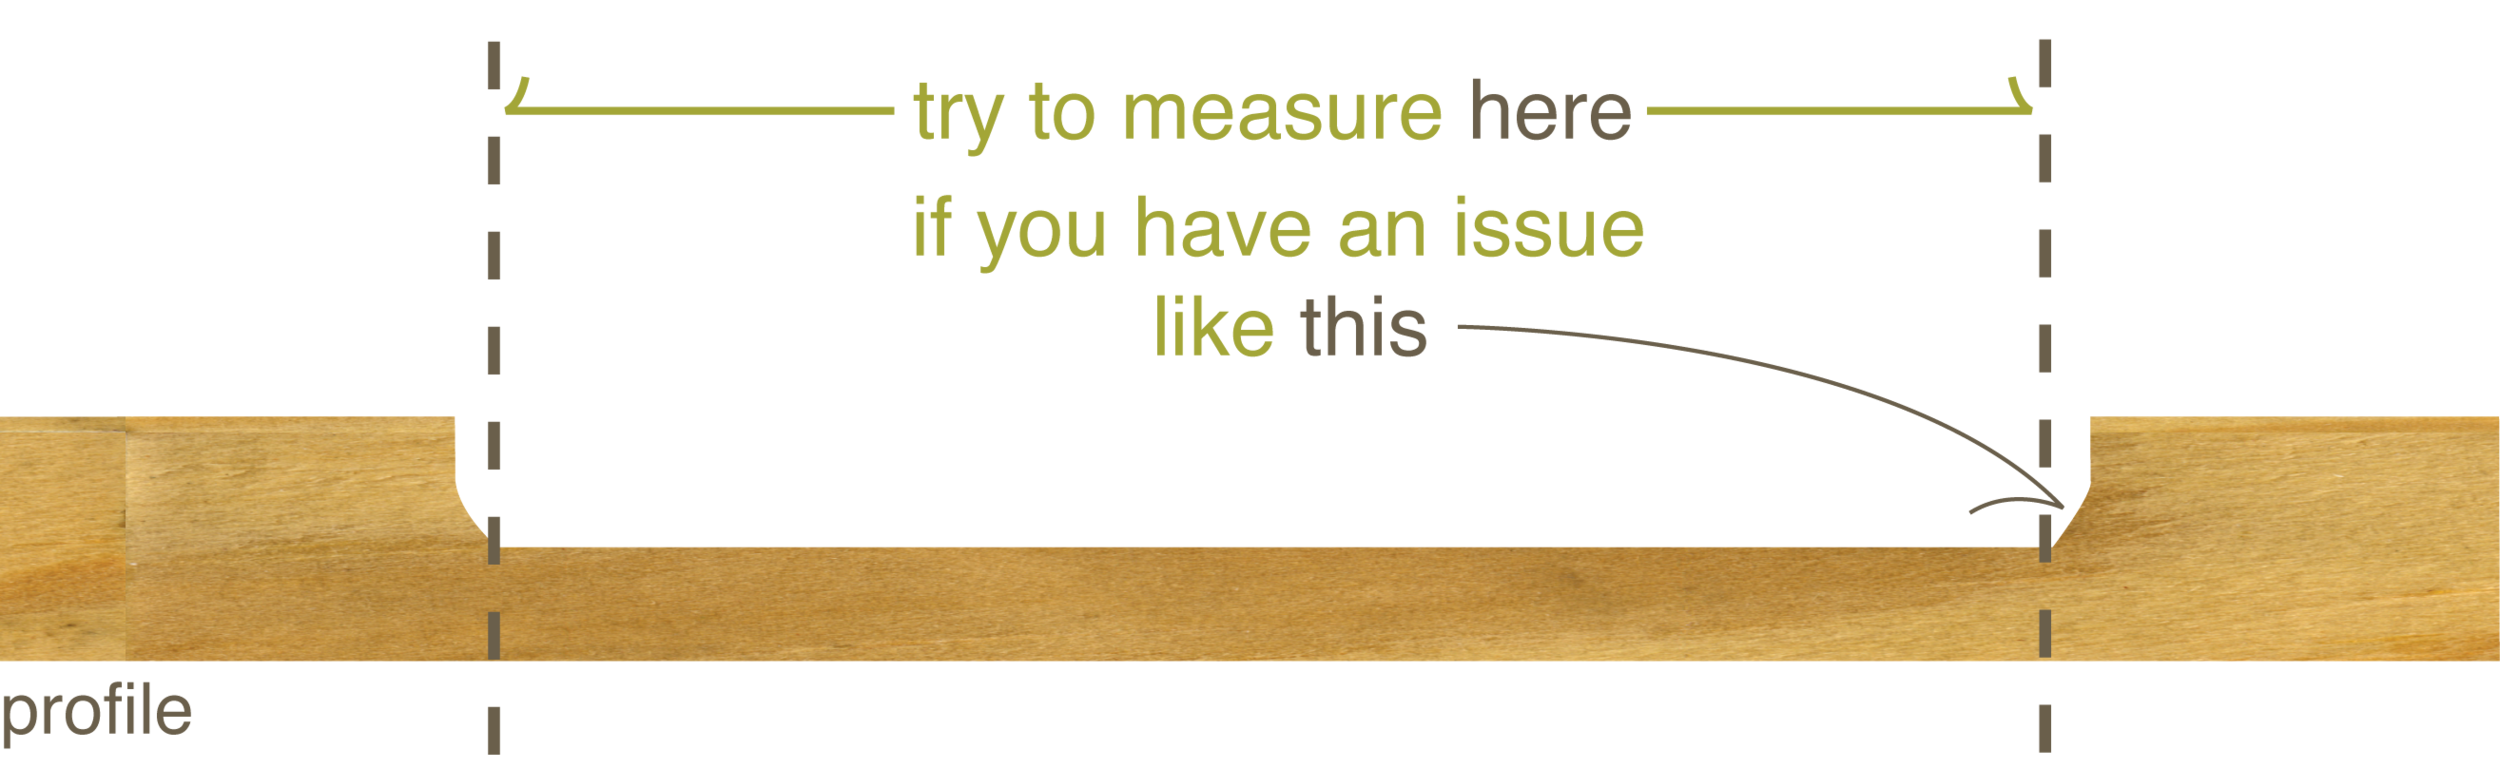 measuring demo 1.png